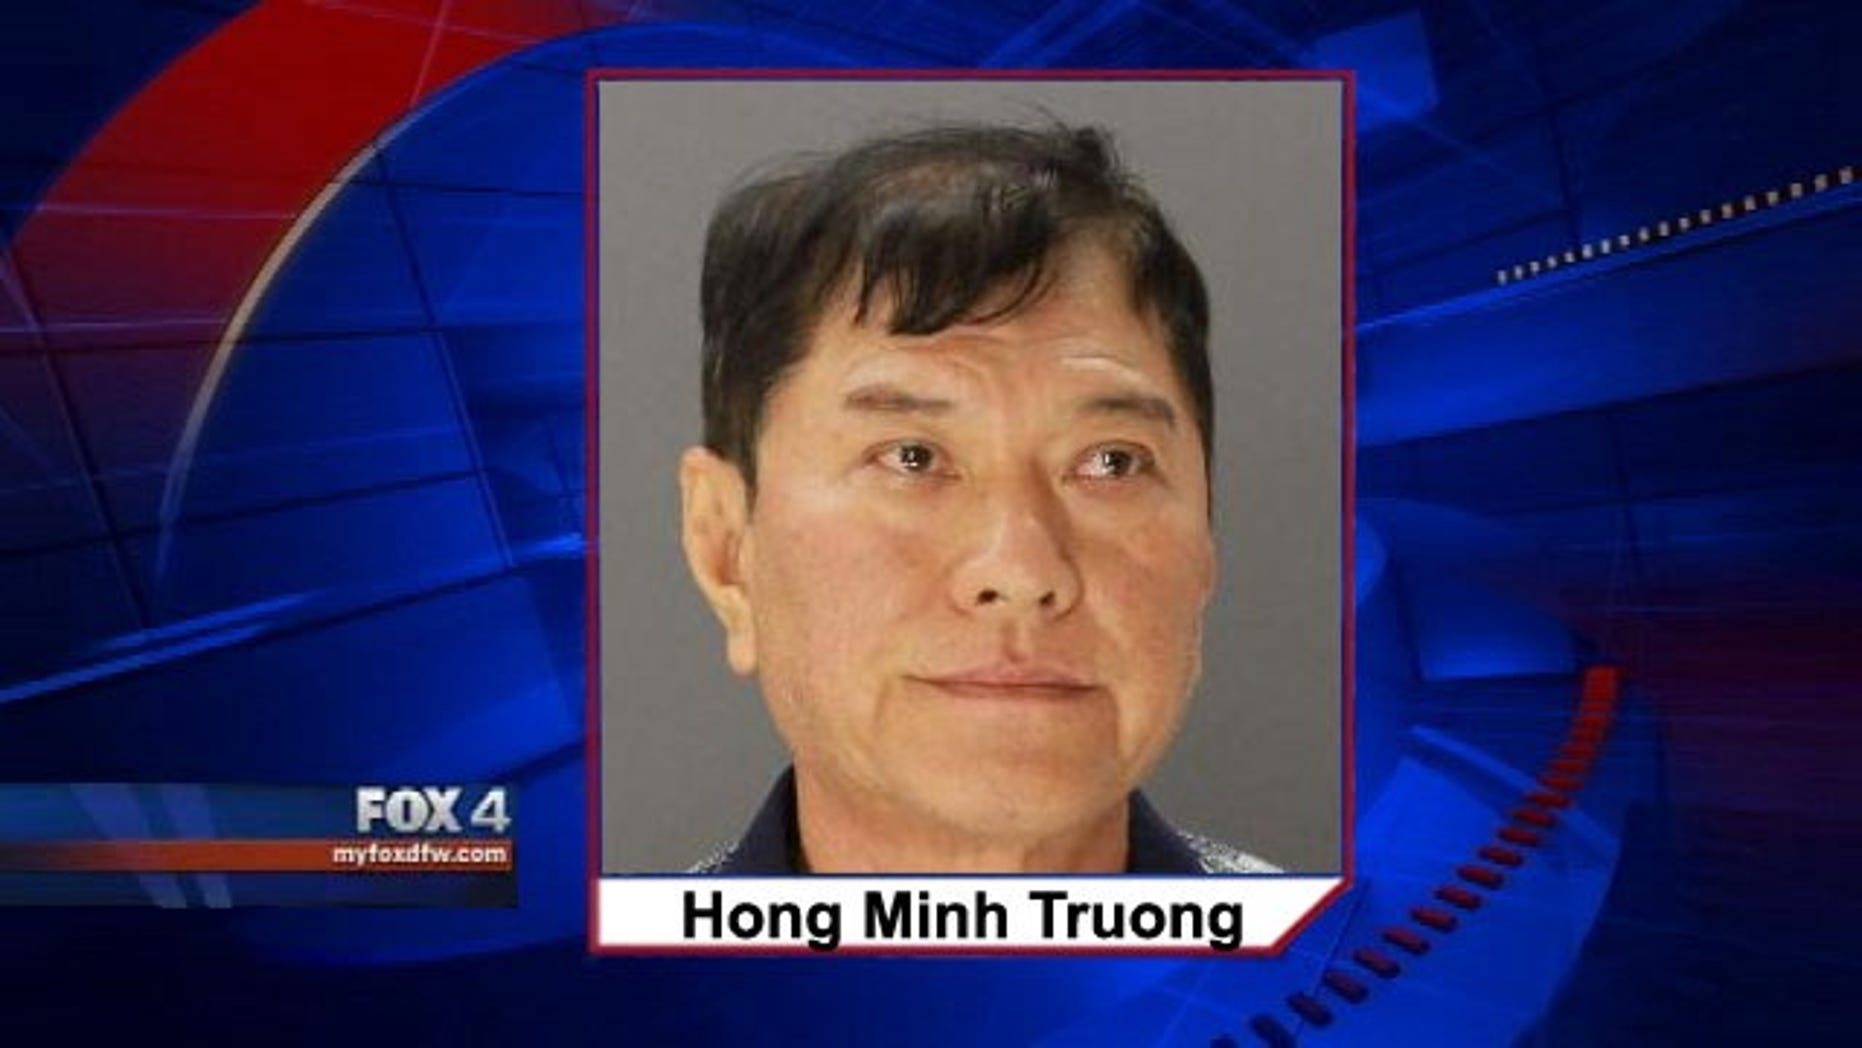 This photo shows Hong Minh Truong, who was arrested July 28, 2014 and accused of sending hundreds of threatening letters containing a hoax white powder (MyFoxDFW.com)